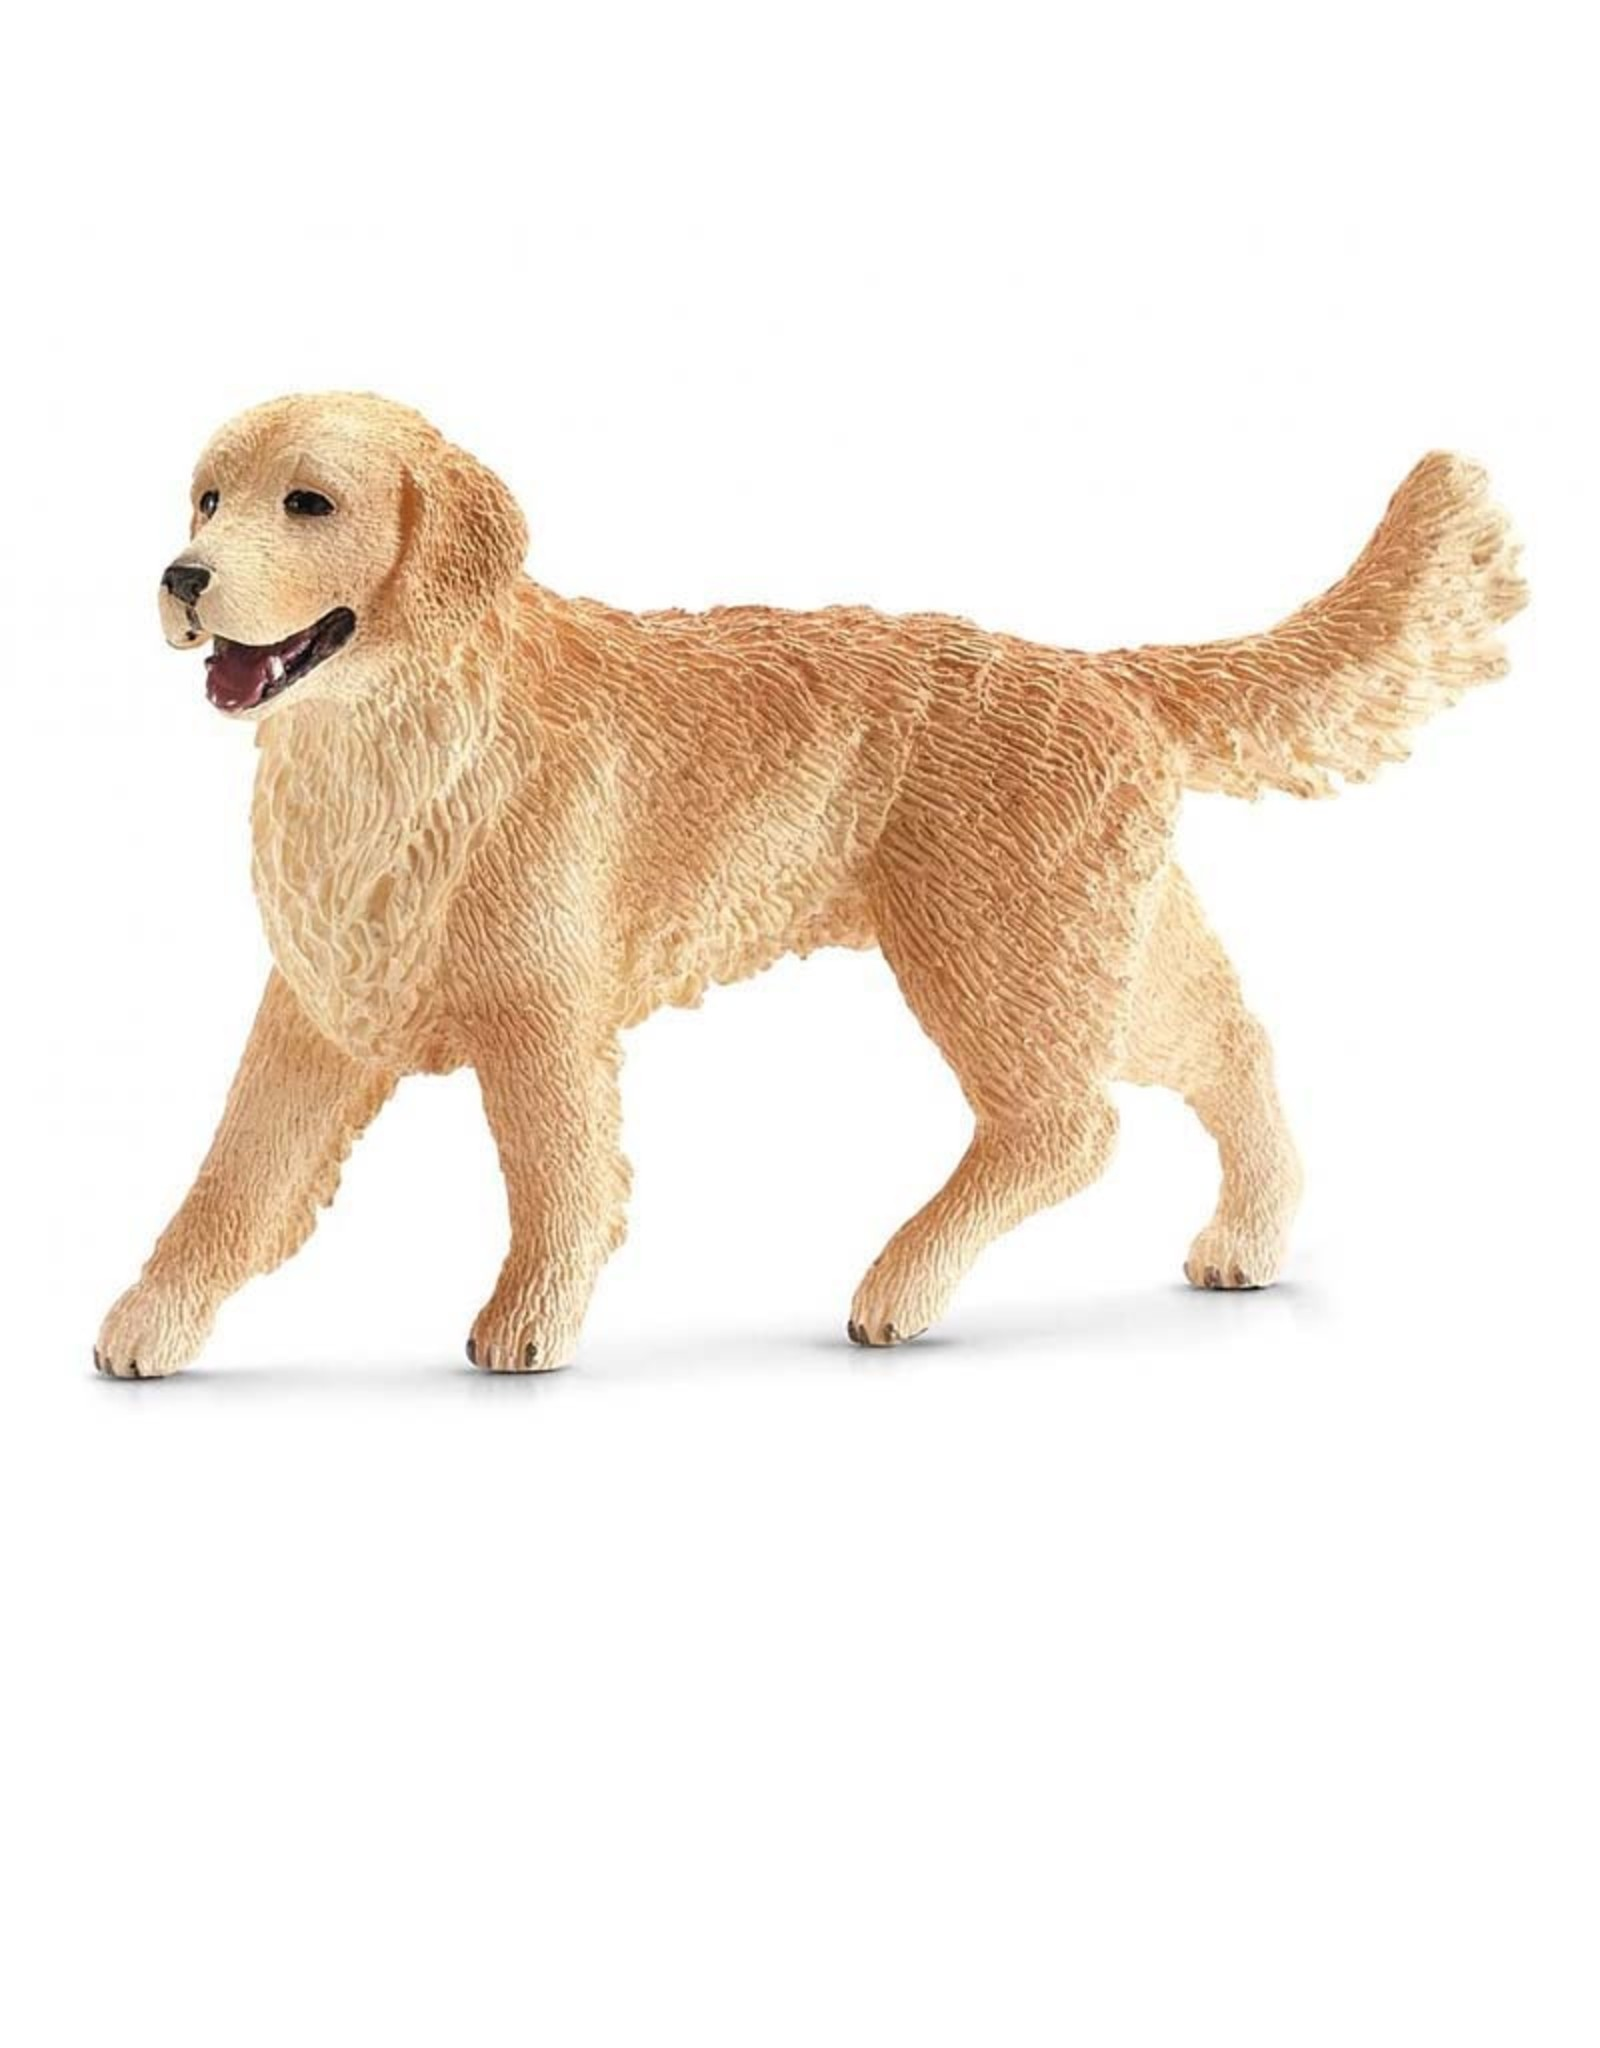 Schleich Schleich Golden Retriever, Female